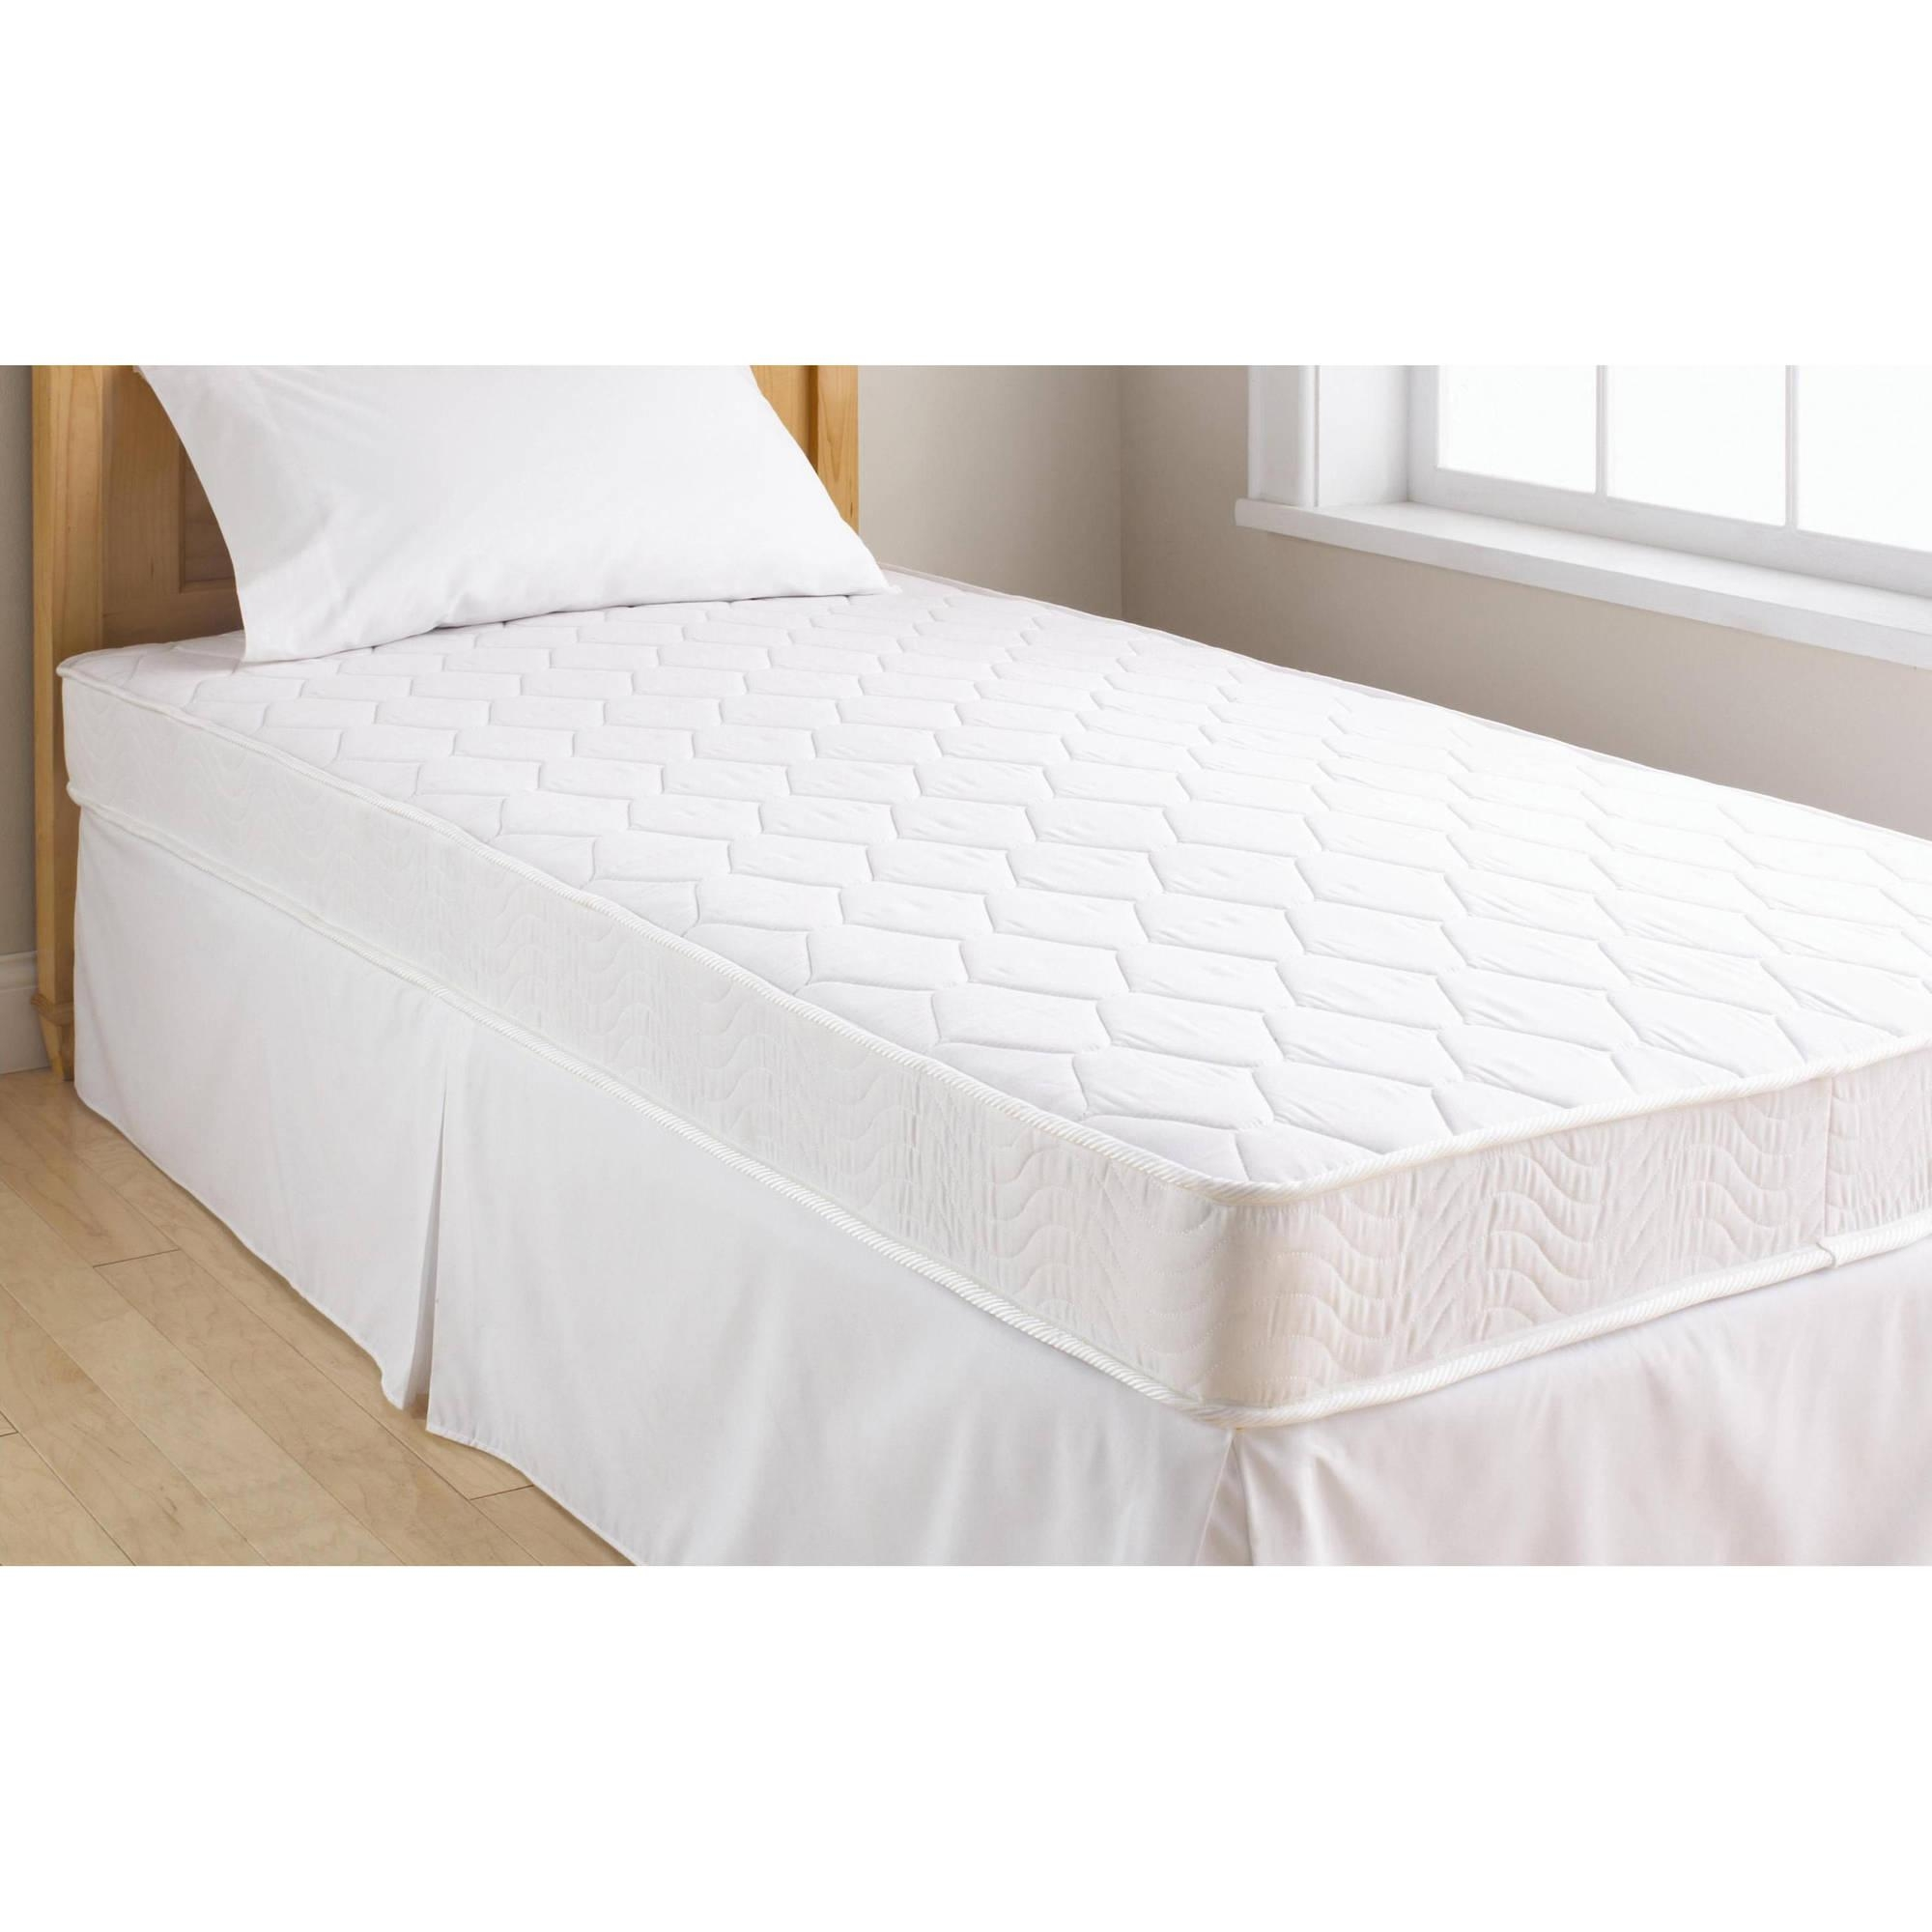 Mattresses : King Size Air Mattress Costco Air Mattress Bunnings With Regard To Inflatable Full Size Mattress (Image 15 of 20)